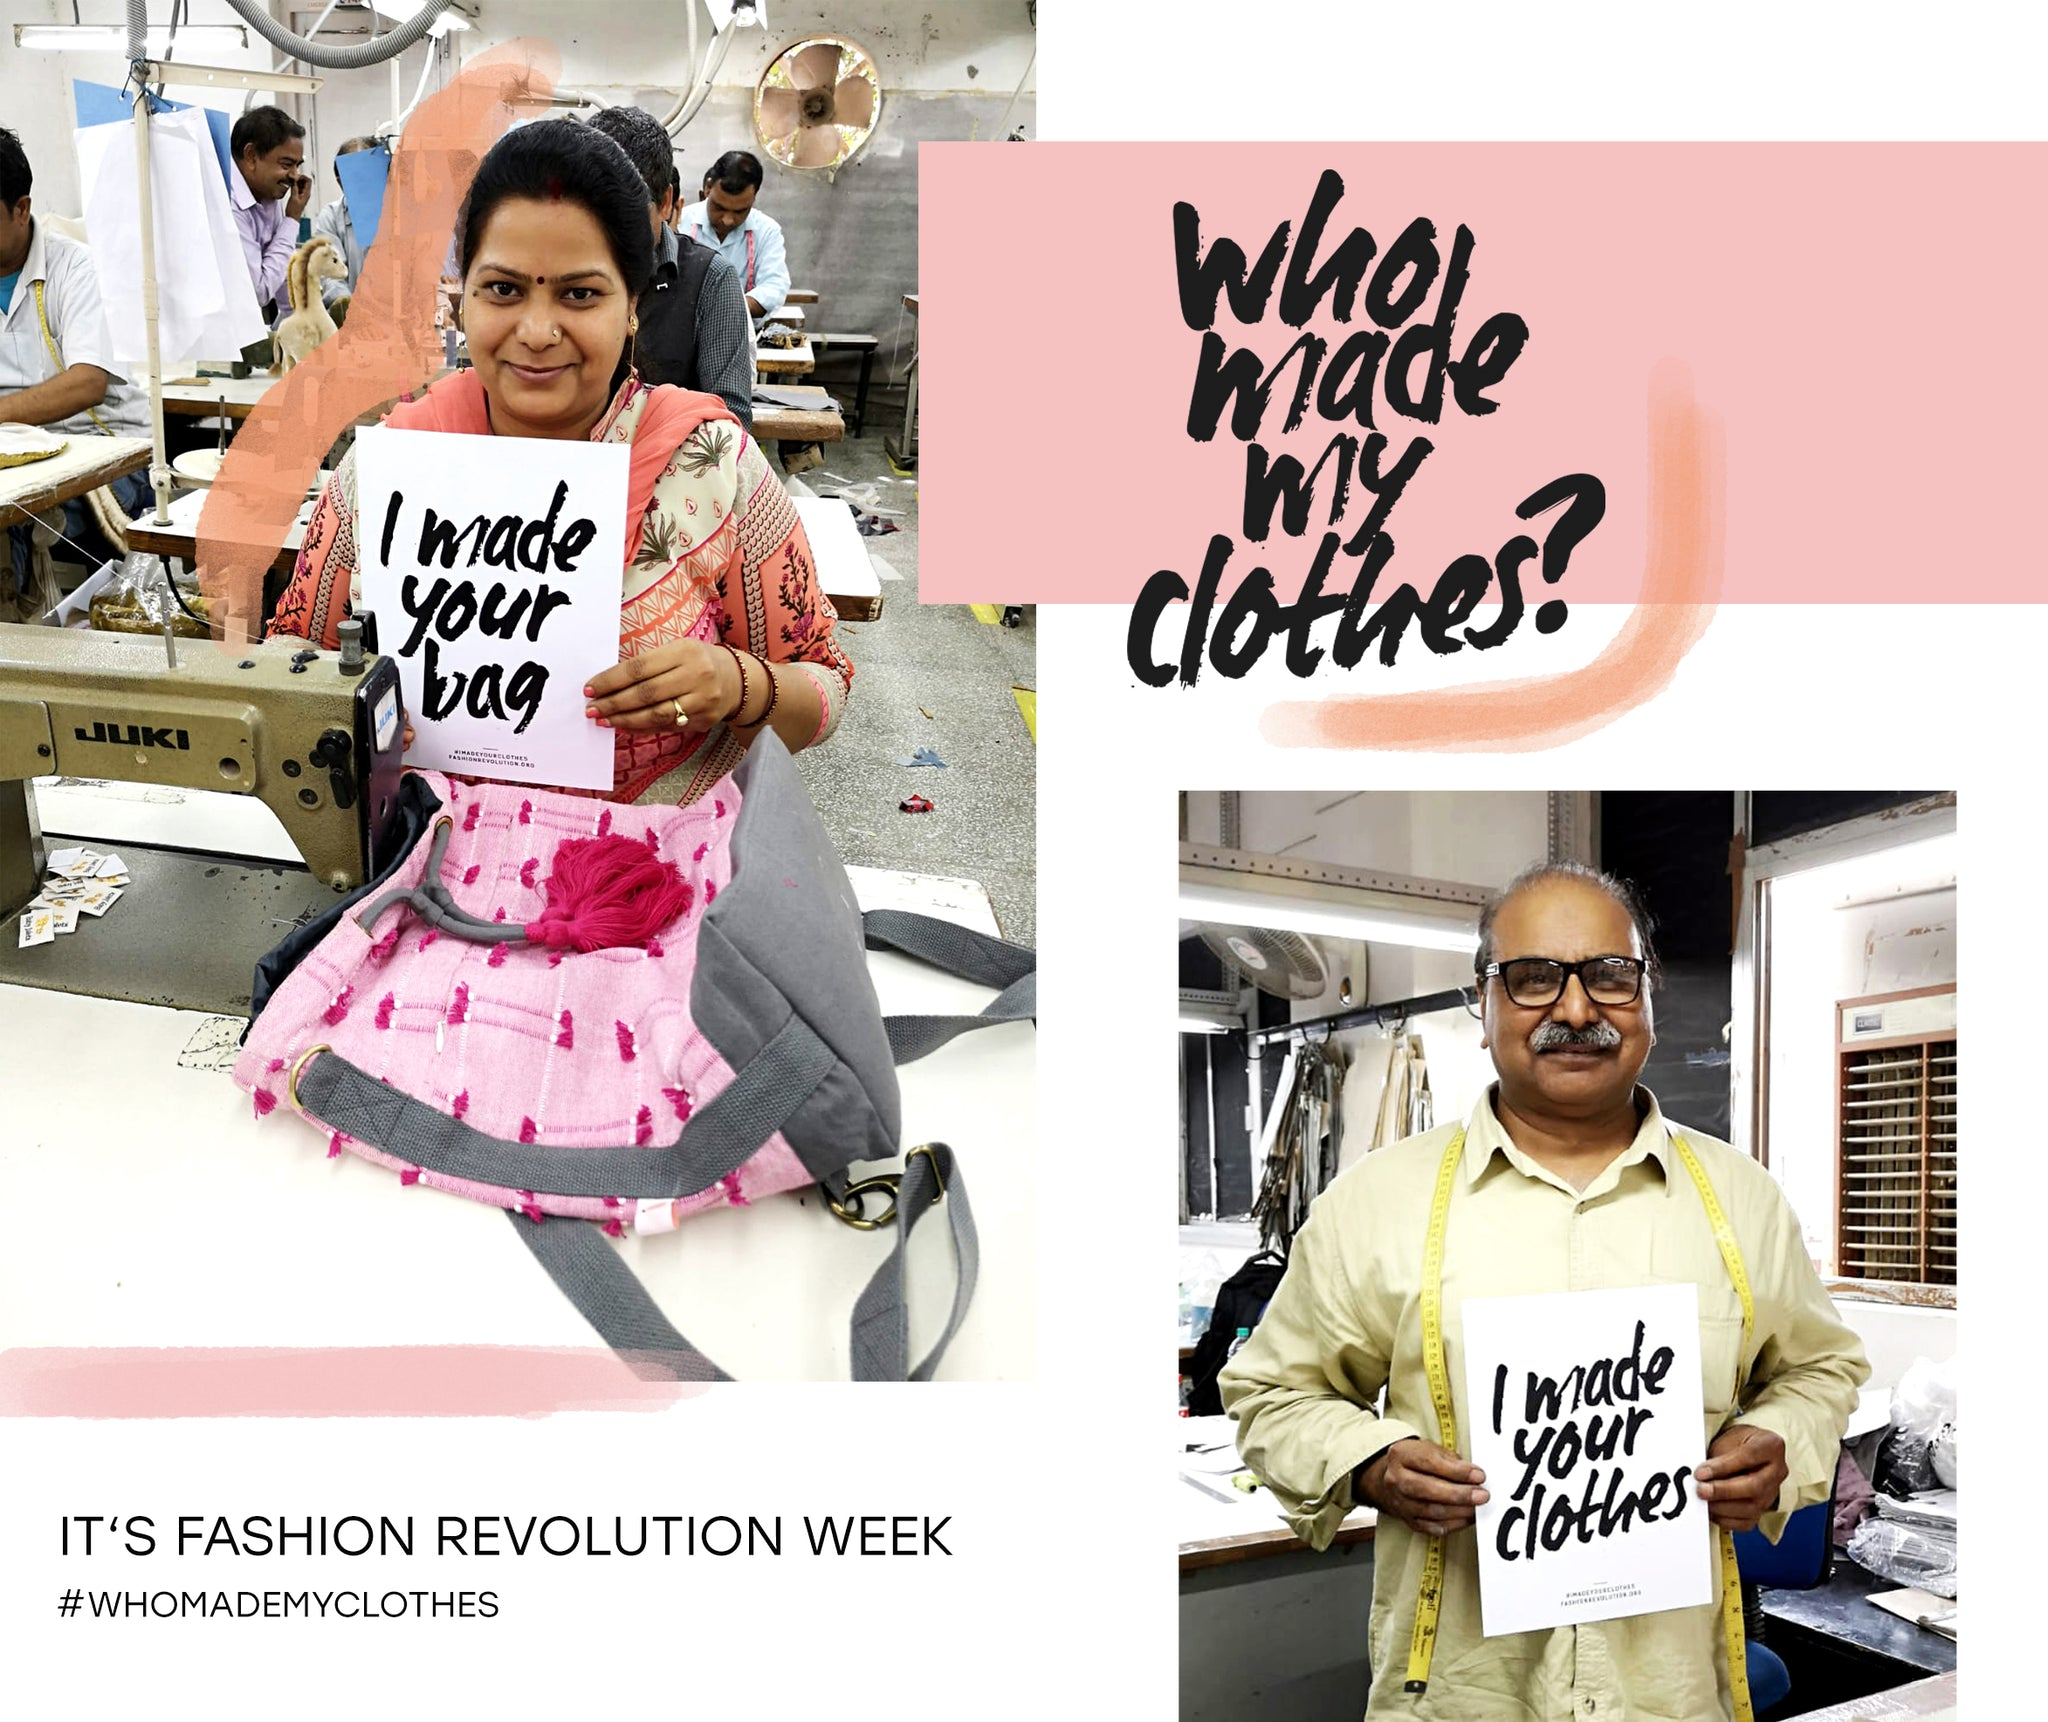 Fashion Revolution Week 2019 - Who made my clothes